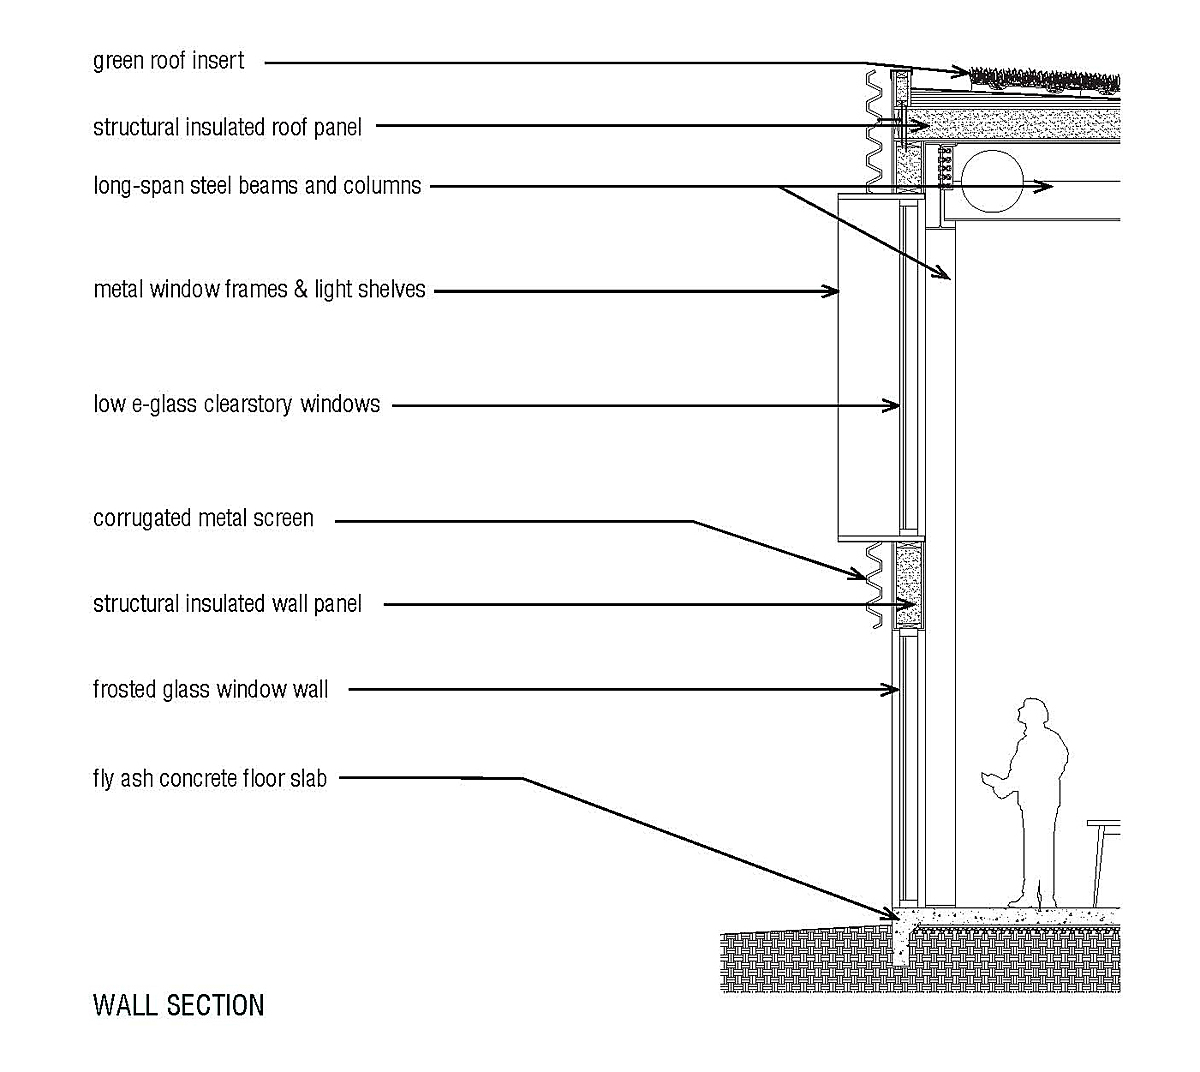 Wall Section